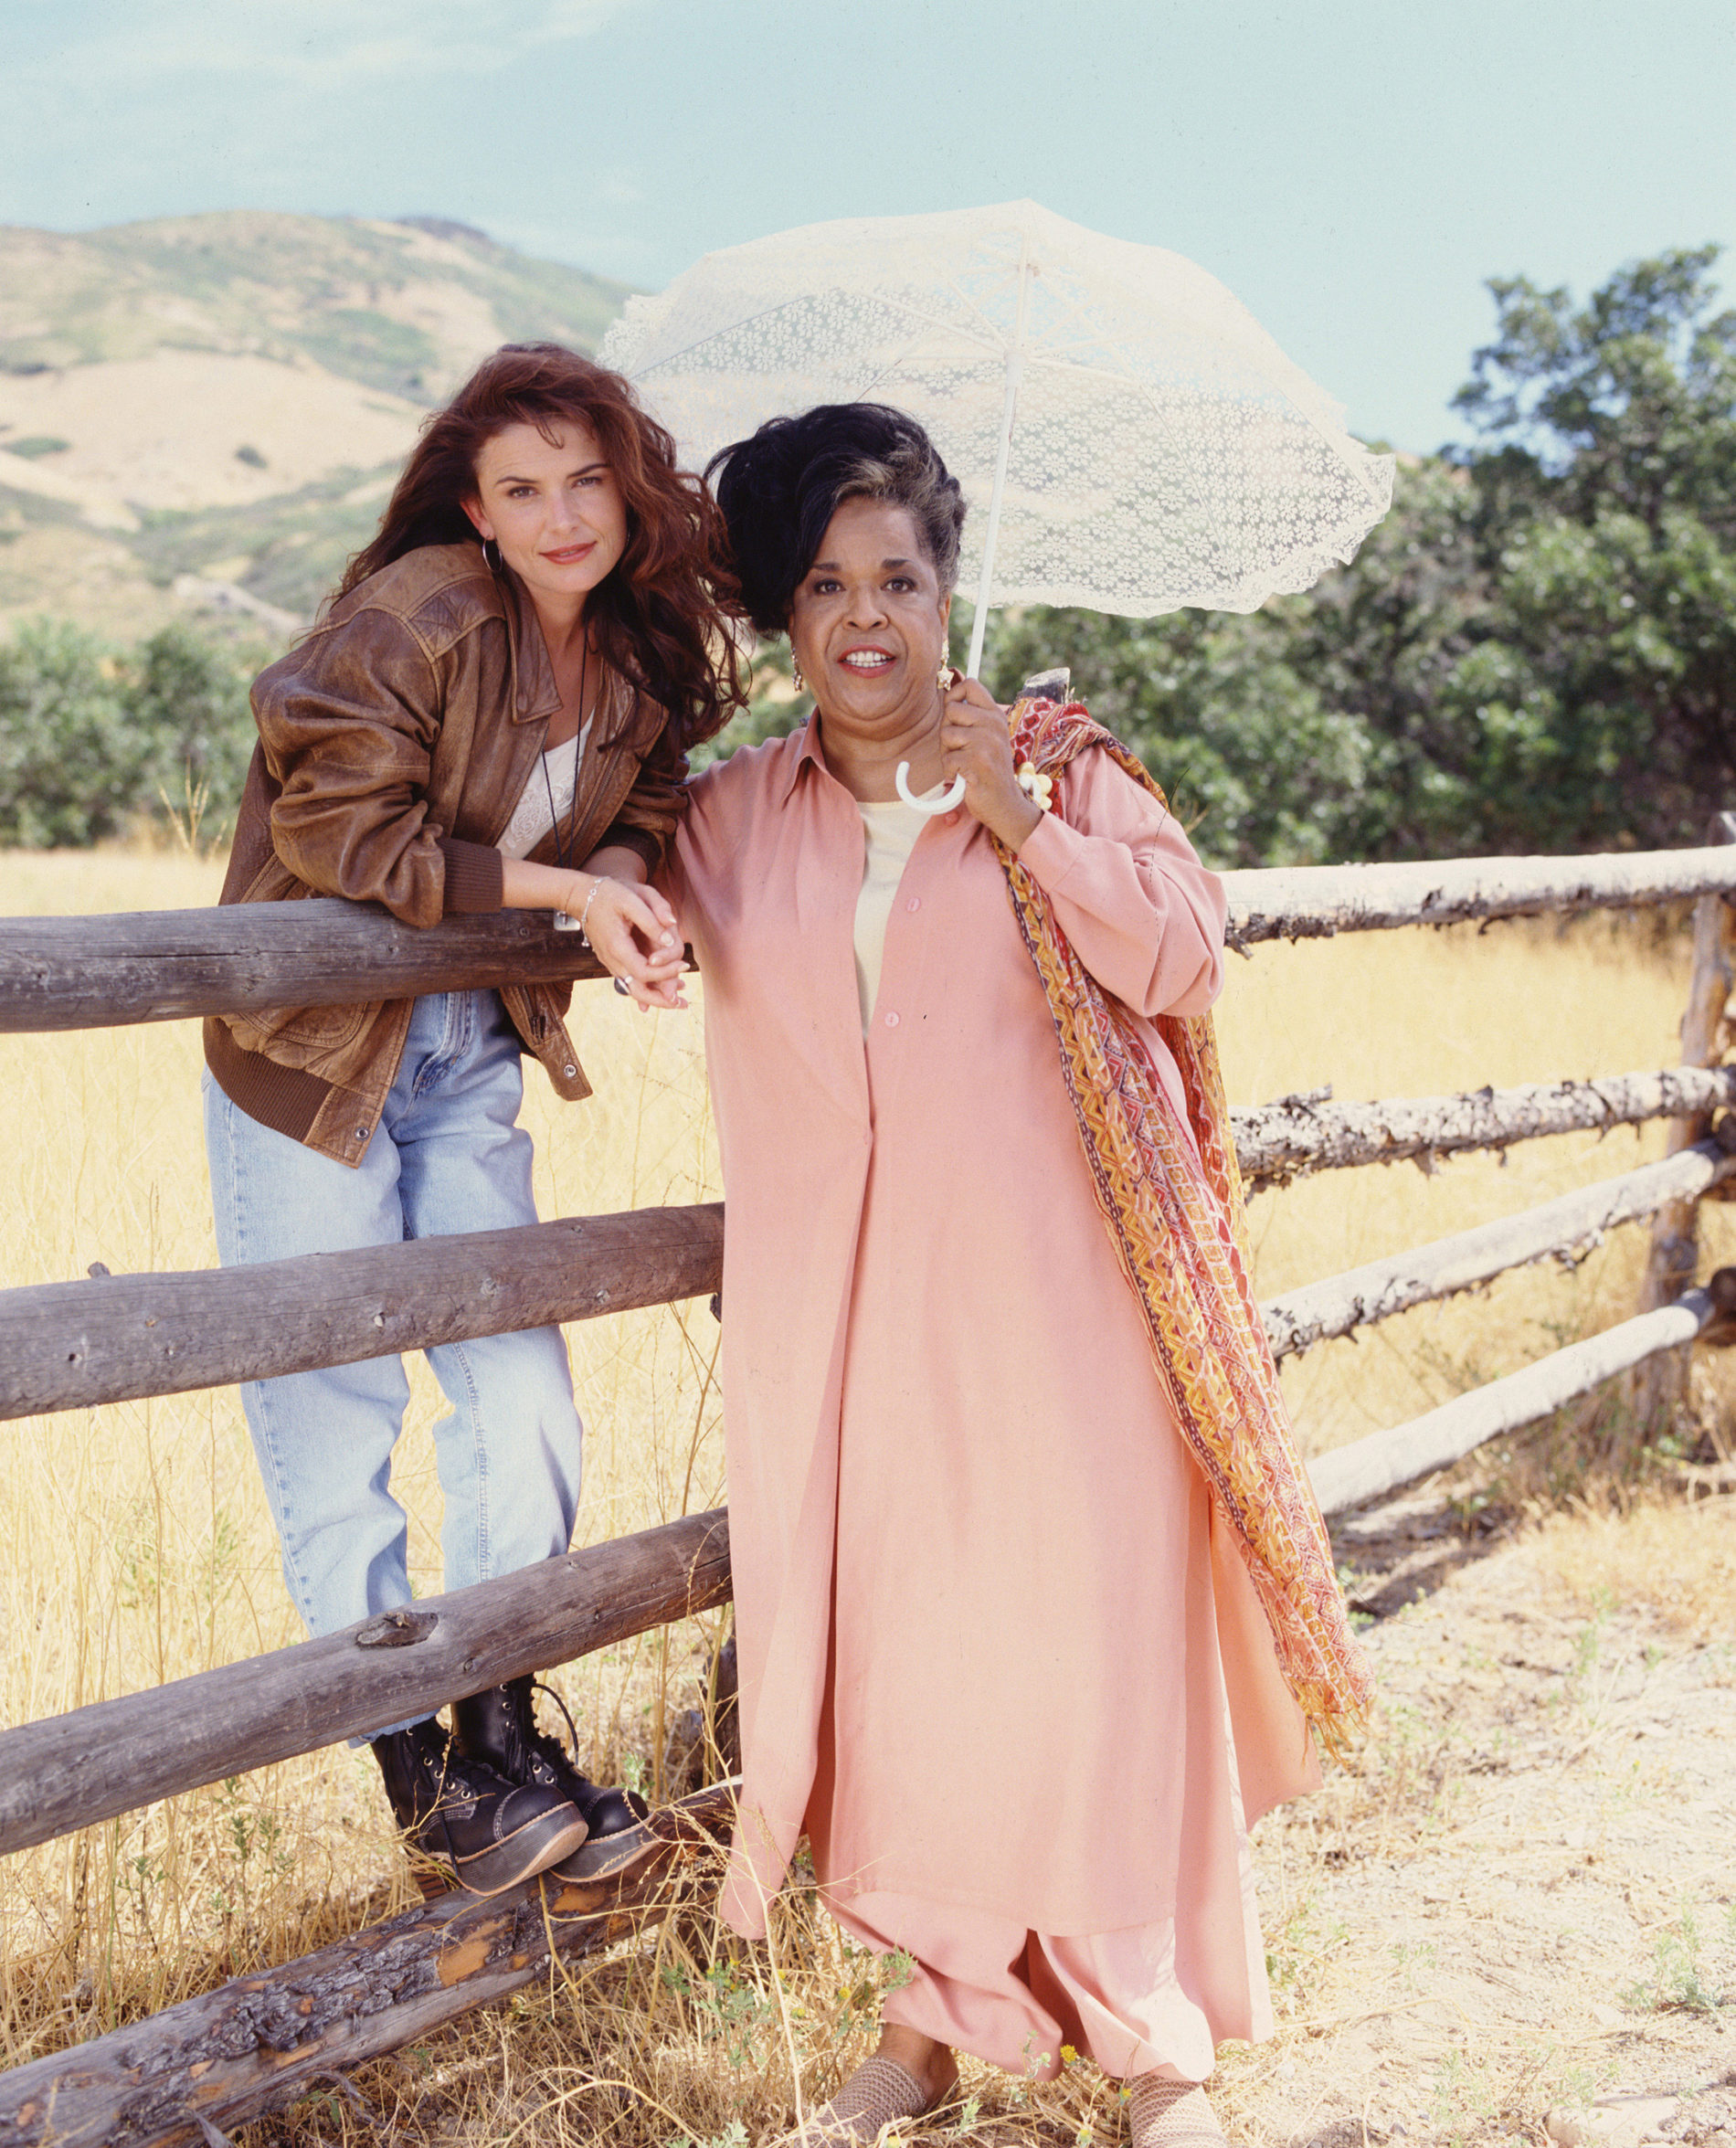 Roma Downey and Della Reese Touched by an Angel LightWorkers